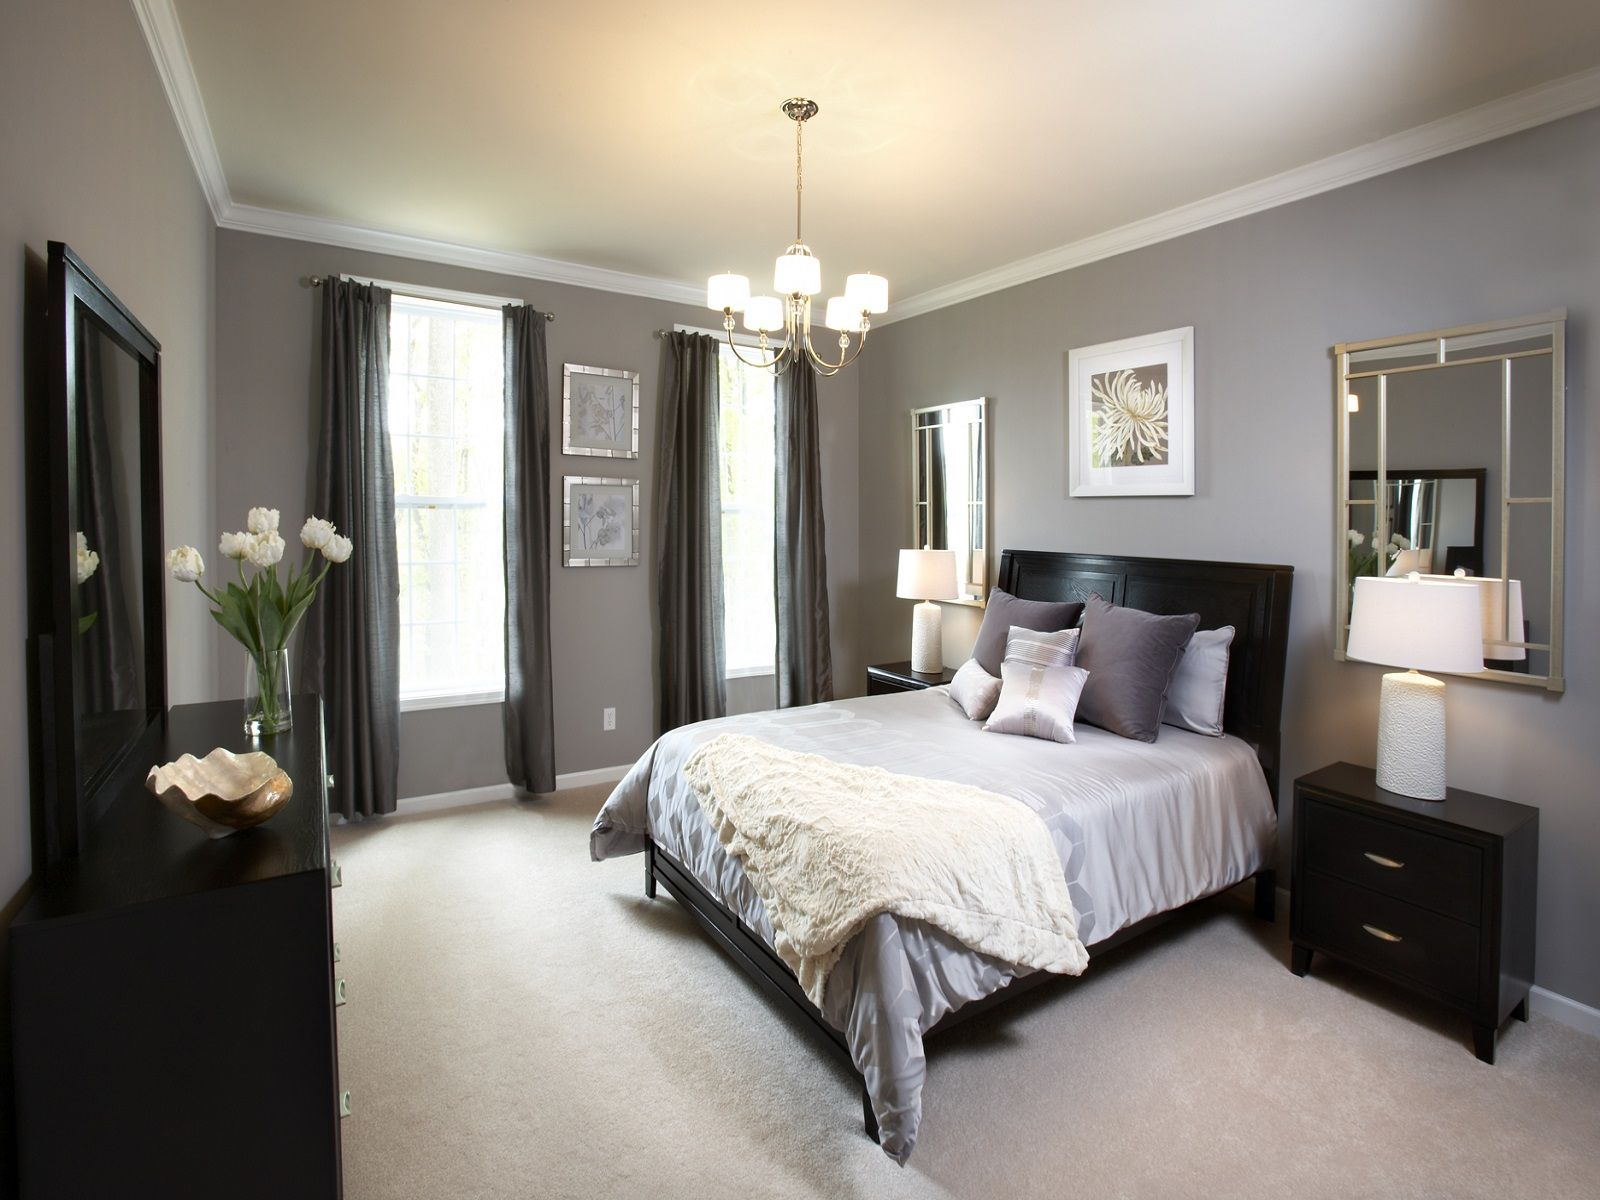 Bedroom paint color ideas for master bedroom buffet with mirror pendant light bedroomideas Master bedroom with grey furniture